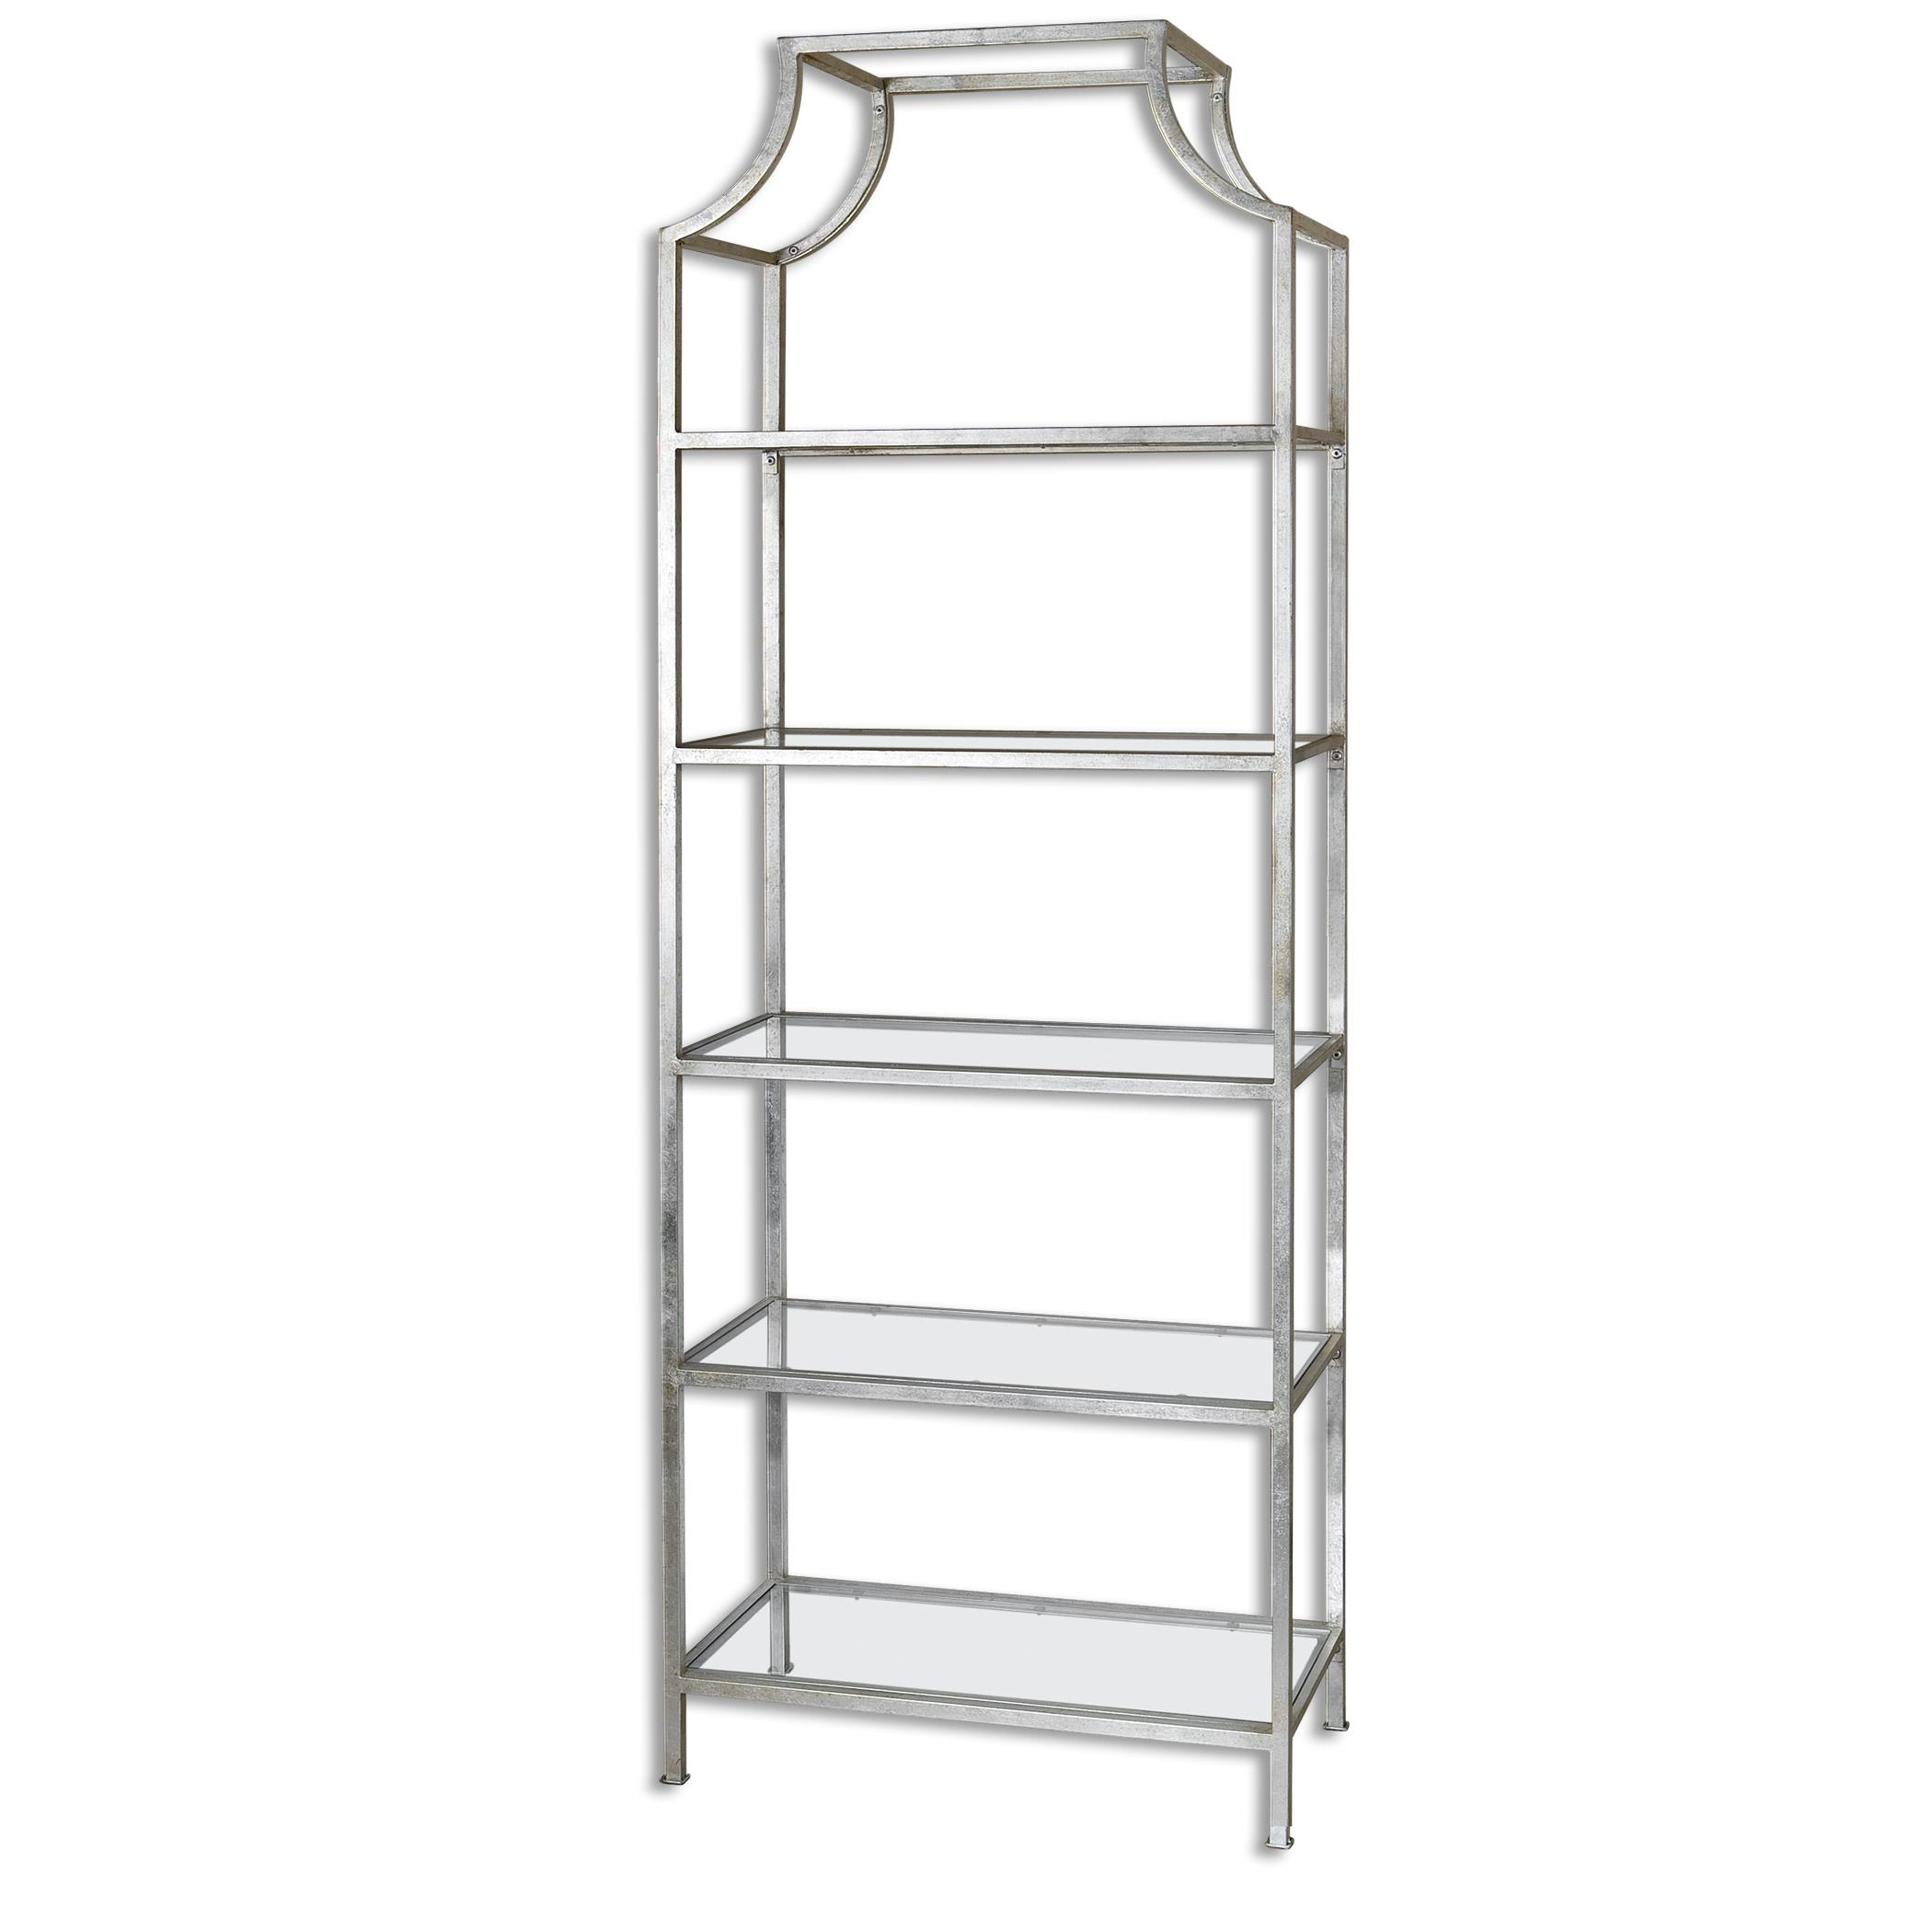 Accent Furniture - Bookcases Aurelie Silver Etagere by Uttermost at Reid's Furniture